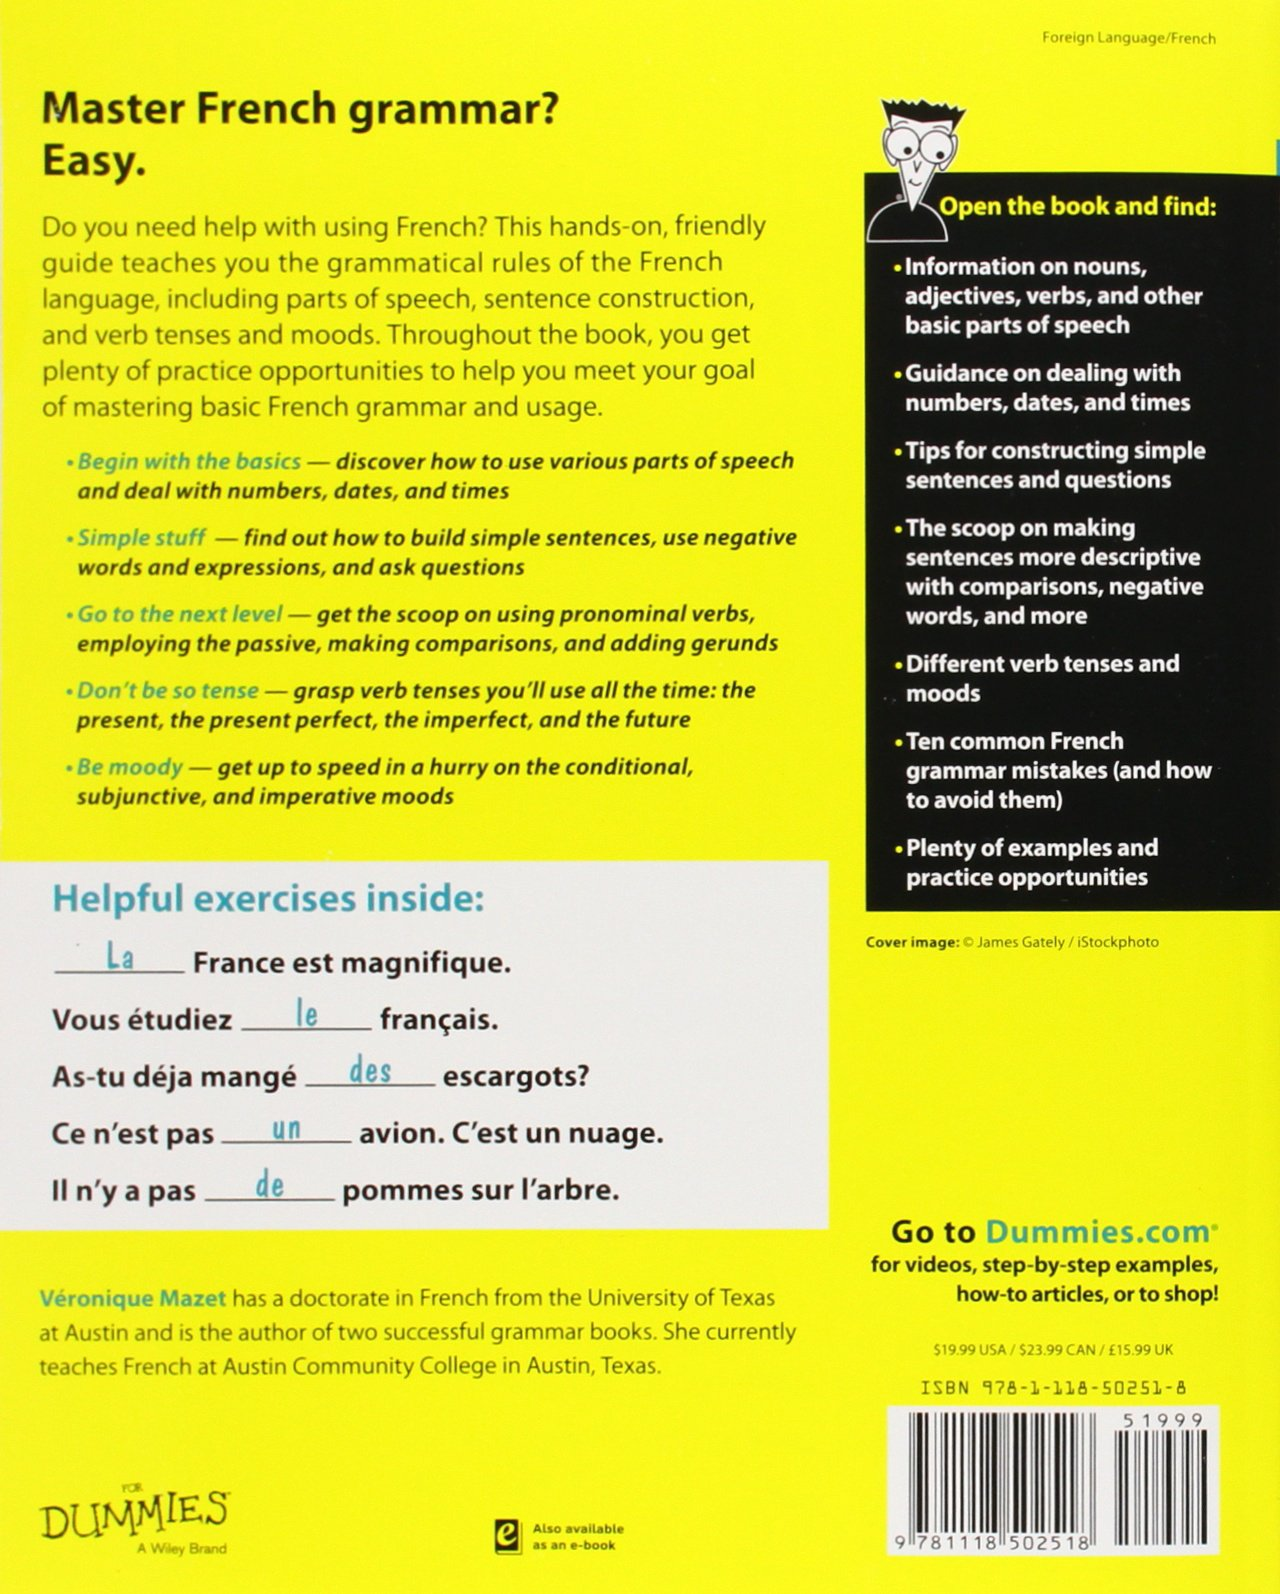 french grammar for dummies r amazon co uk veronique mazet french grammar for dummies r amazon co uk veronique mazet 8601420722835 books